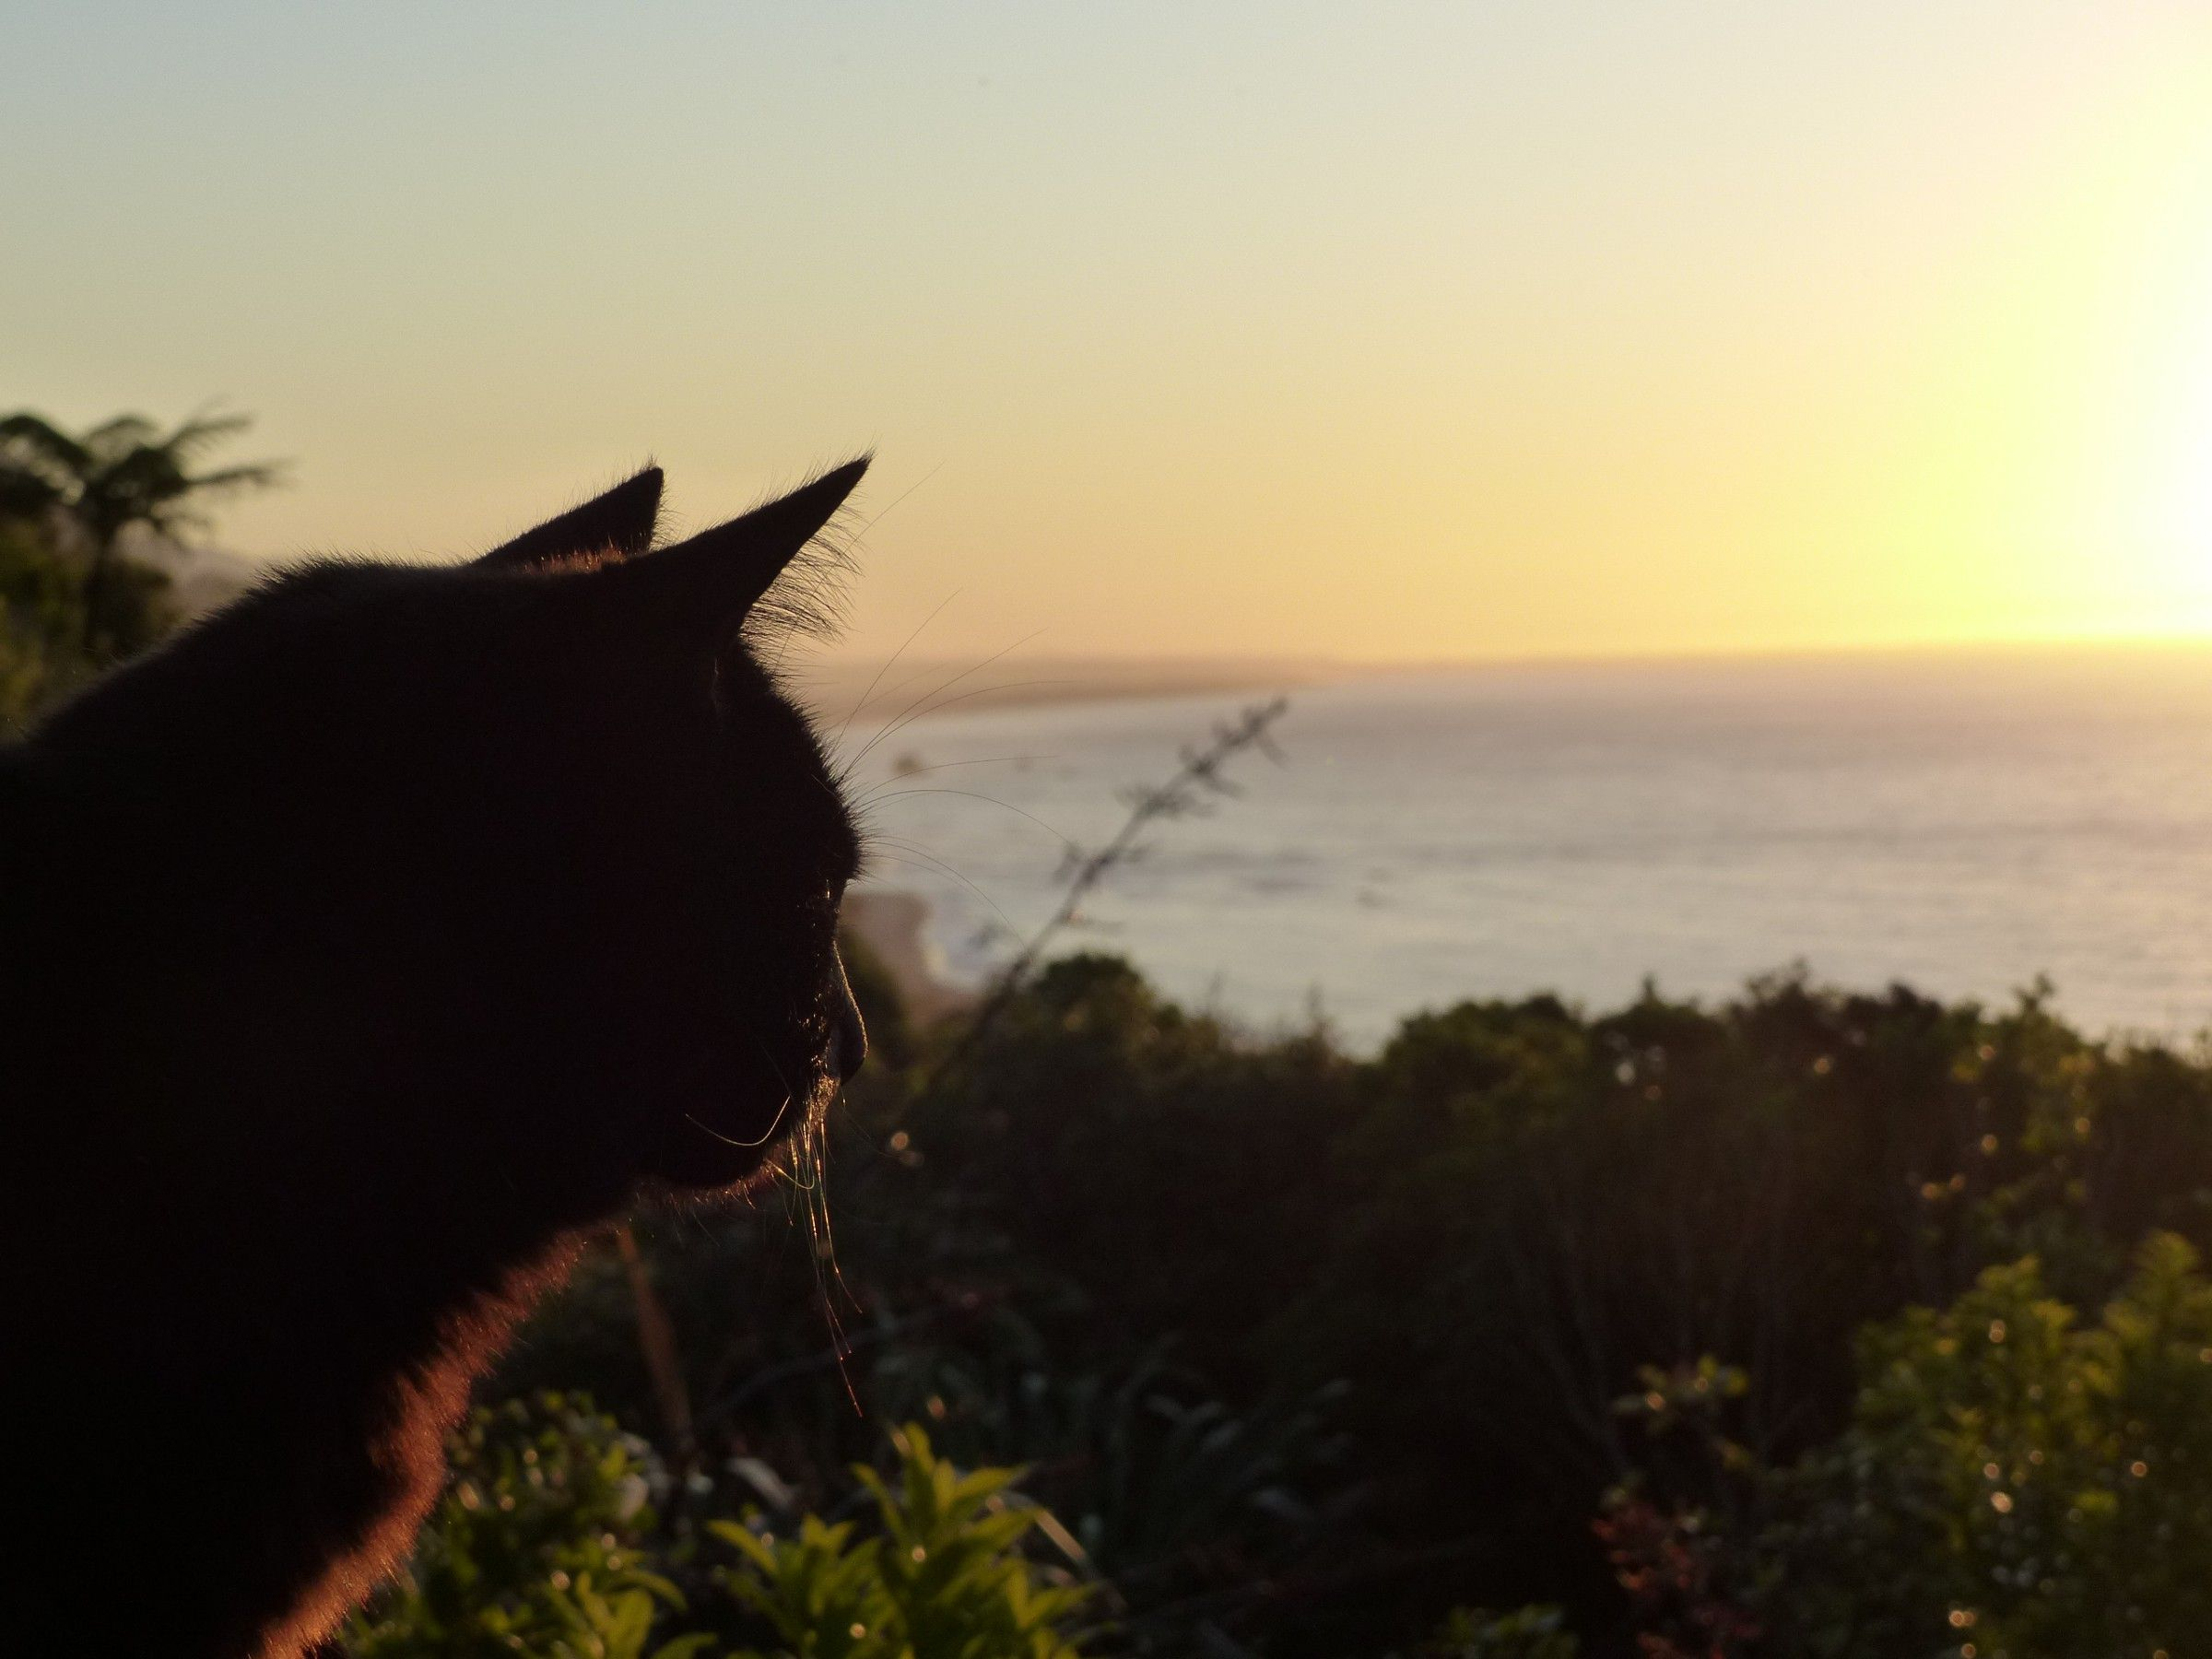 Cat at sunset at the Old Slaughterhouse